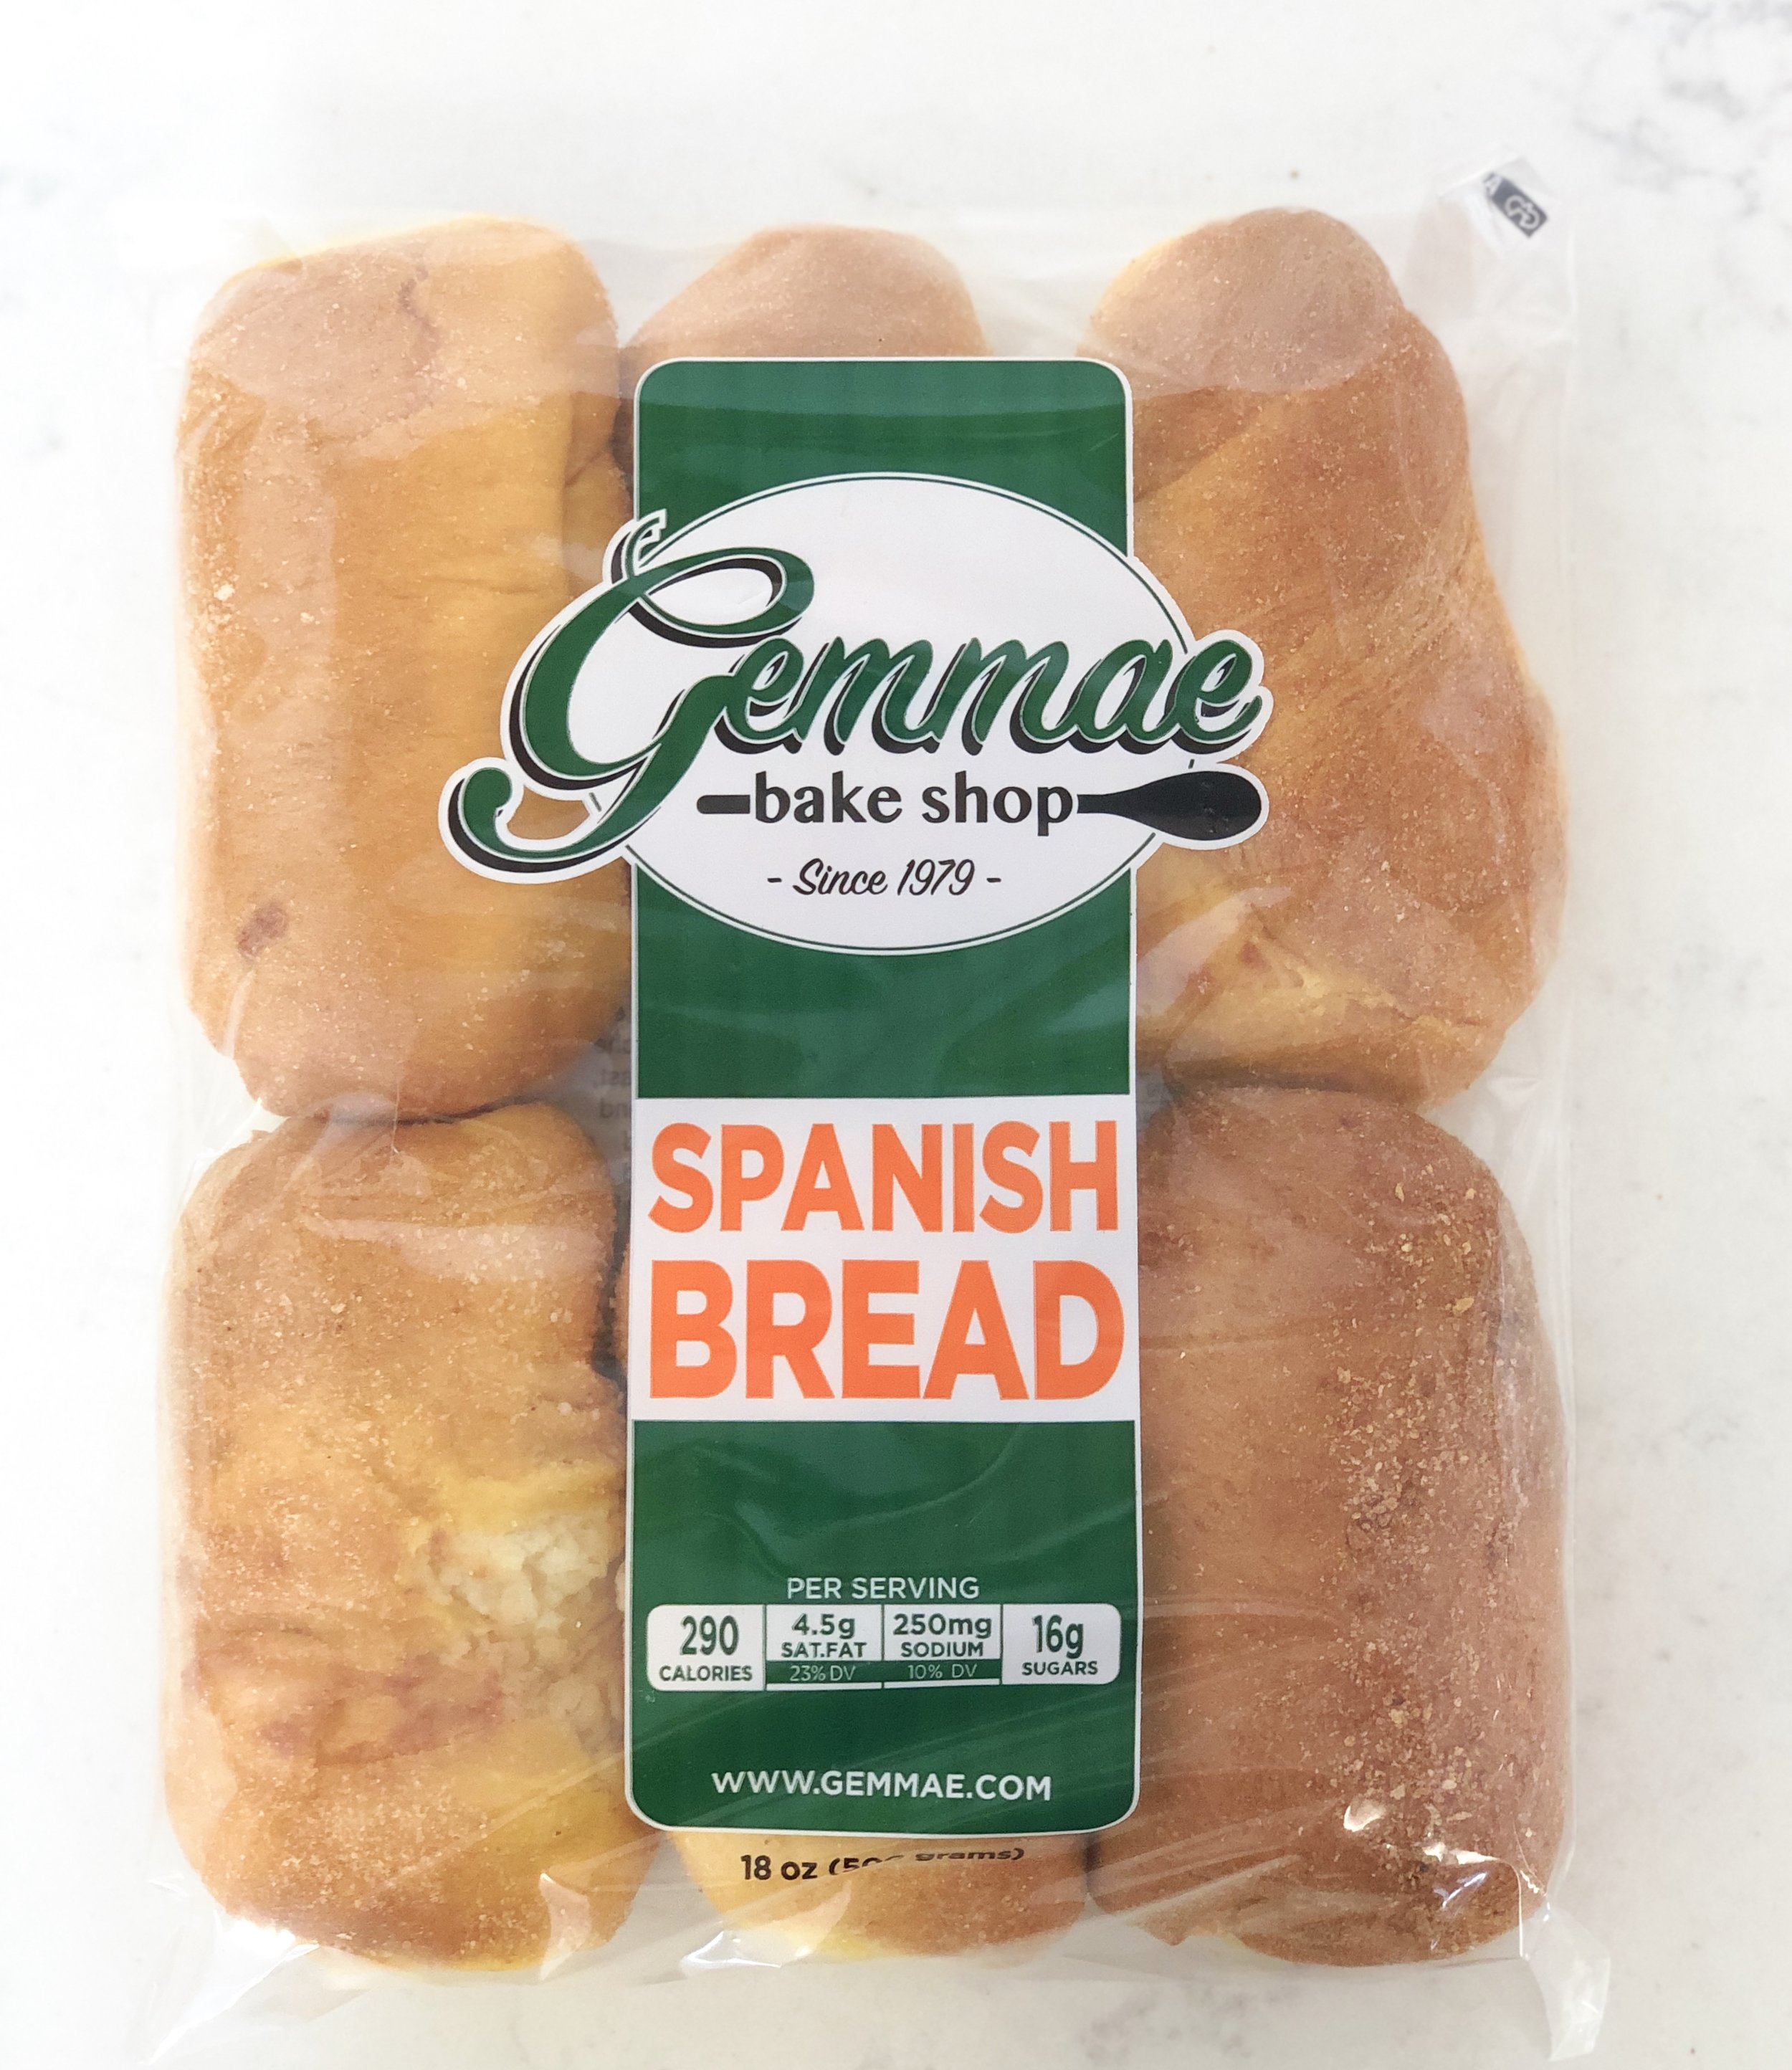 SPANISH BREAD   Often imitated, never duplicated - our Spanish Bread is filled with creamy, sweet cheese filling, topped with a sprinkle of sugar. Each bag contains 6 bread rolls. Best when toasted.